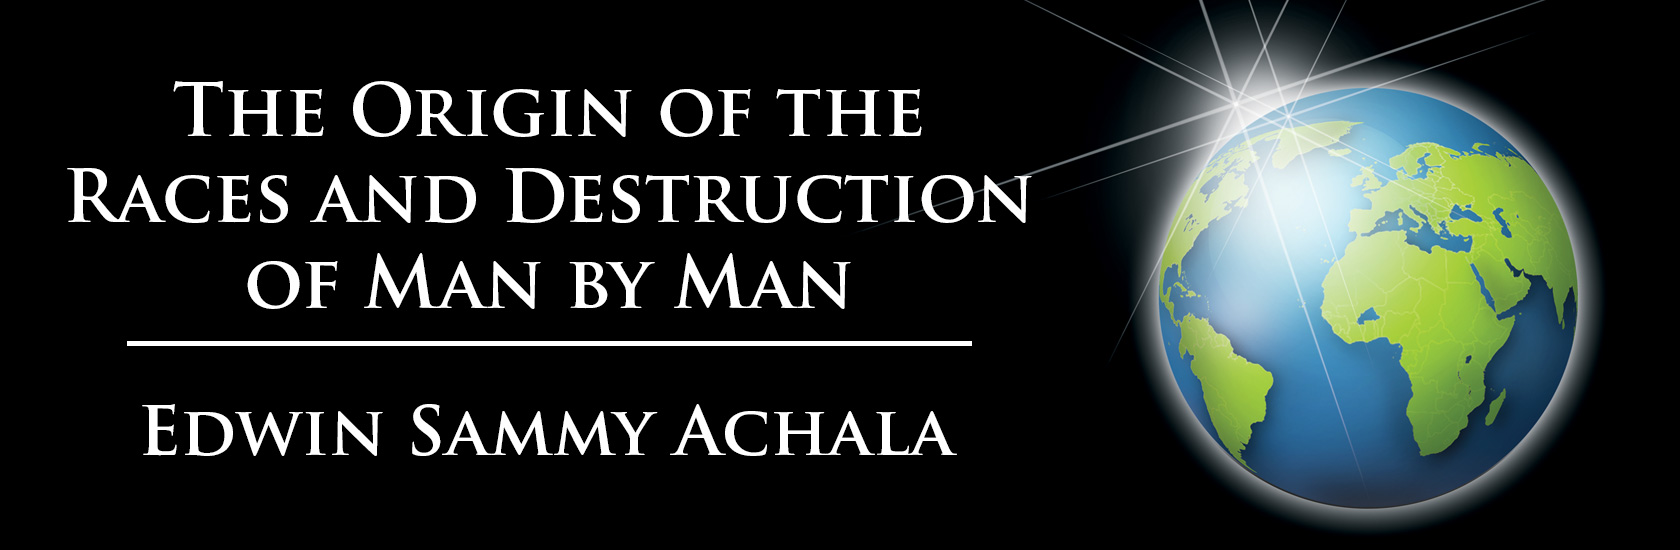 The Origin of the Races and Destruction of Man by Man